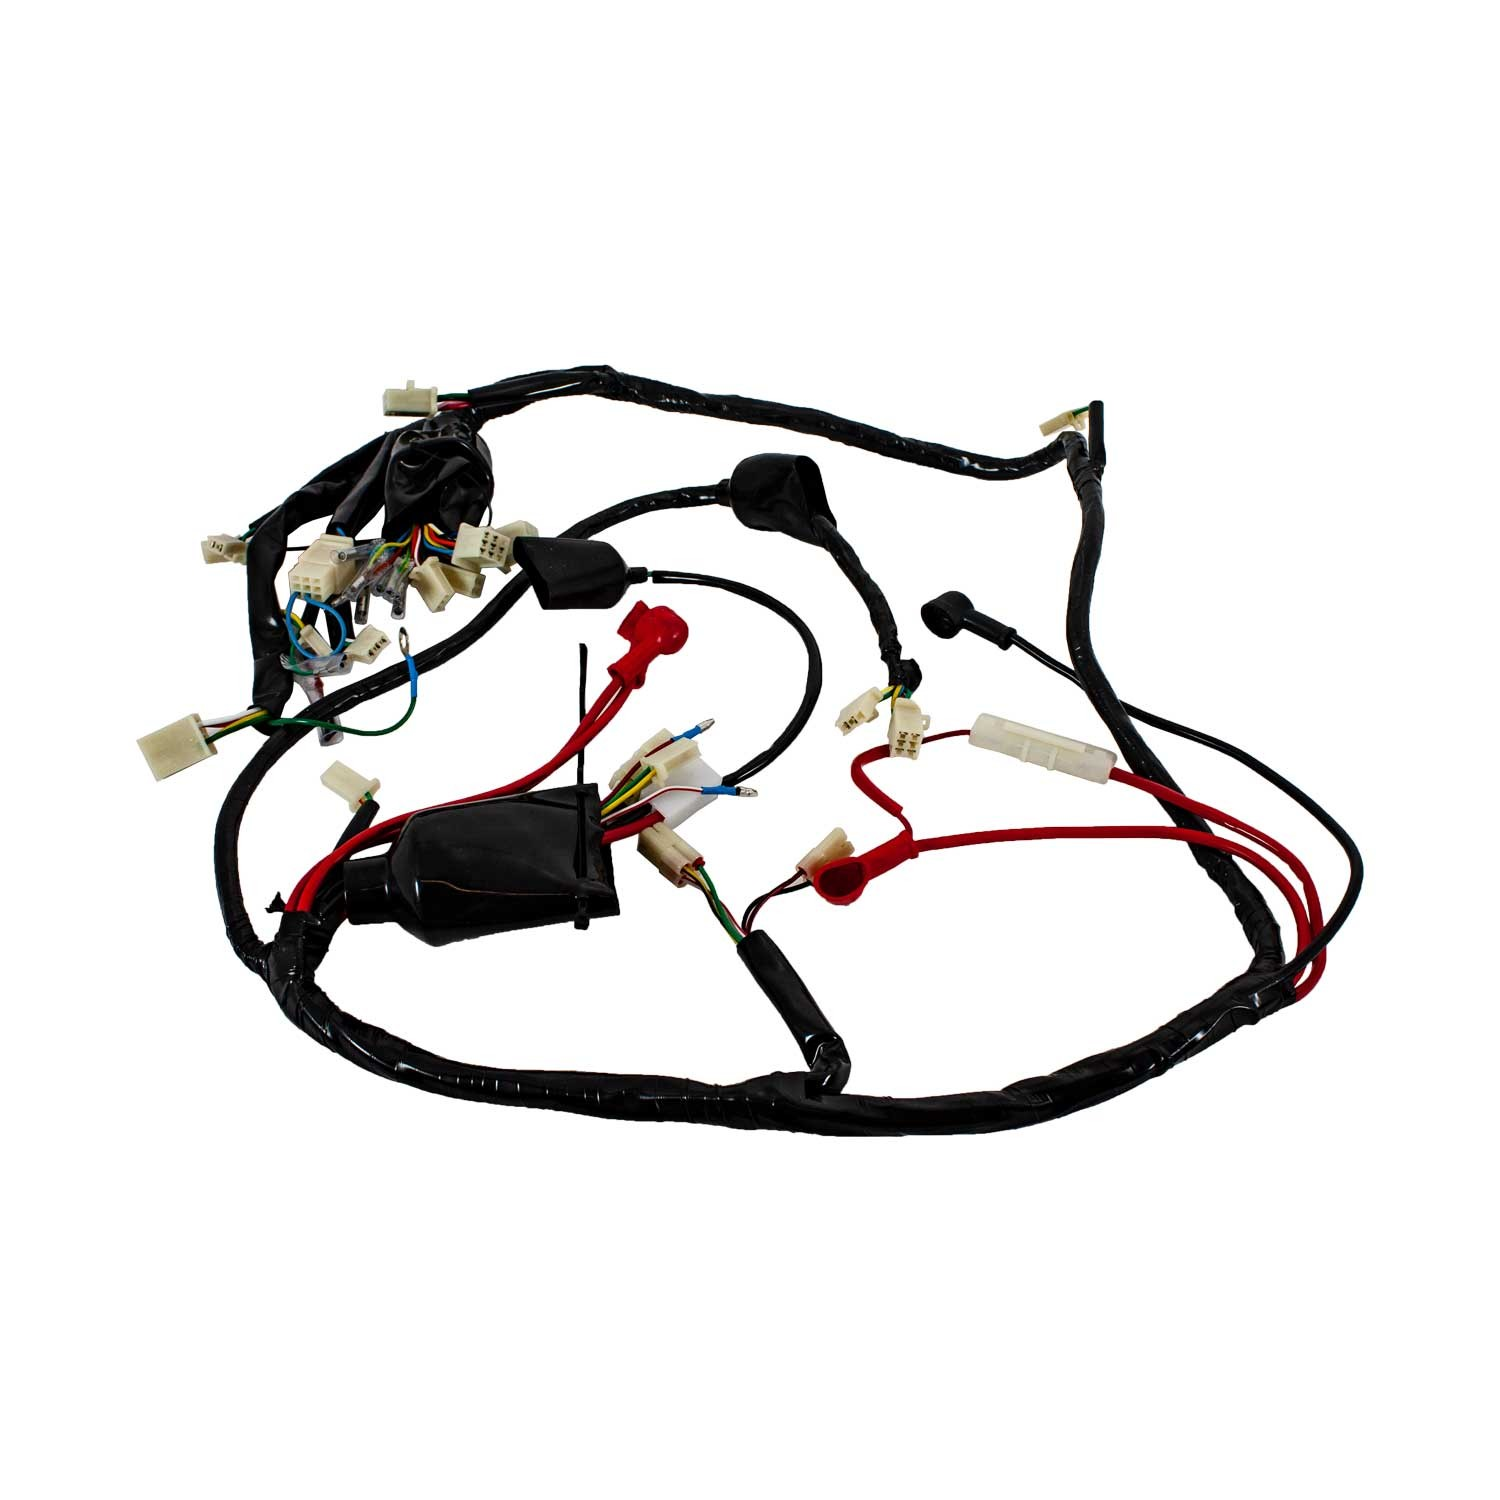 wire harness fits rugby qualityscooterparts Wire Awning